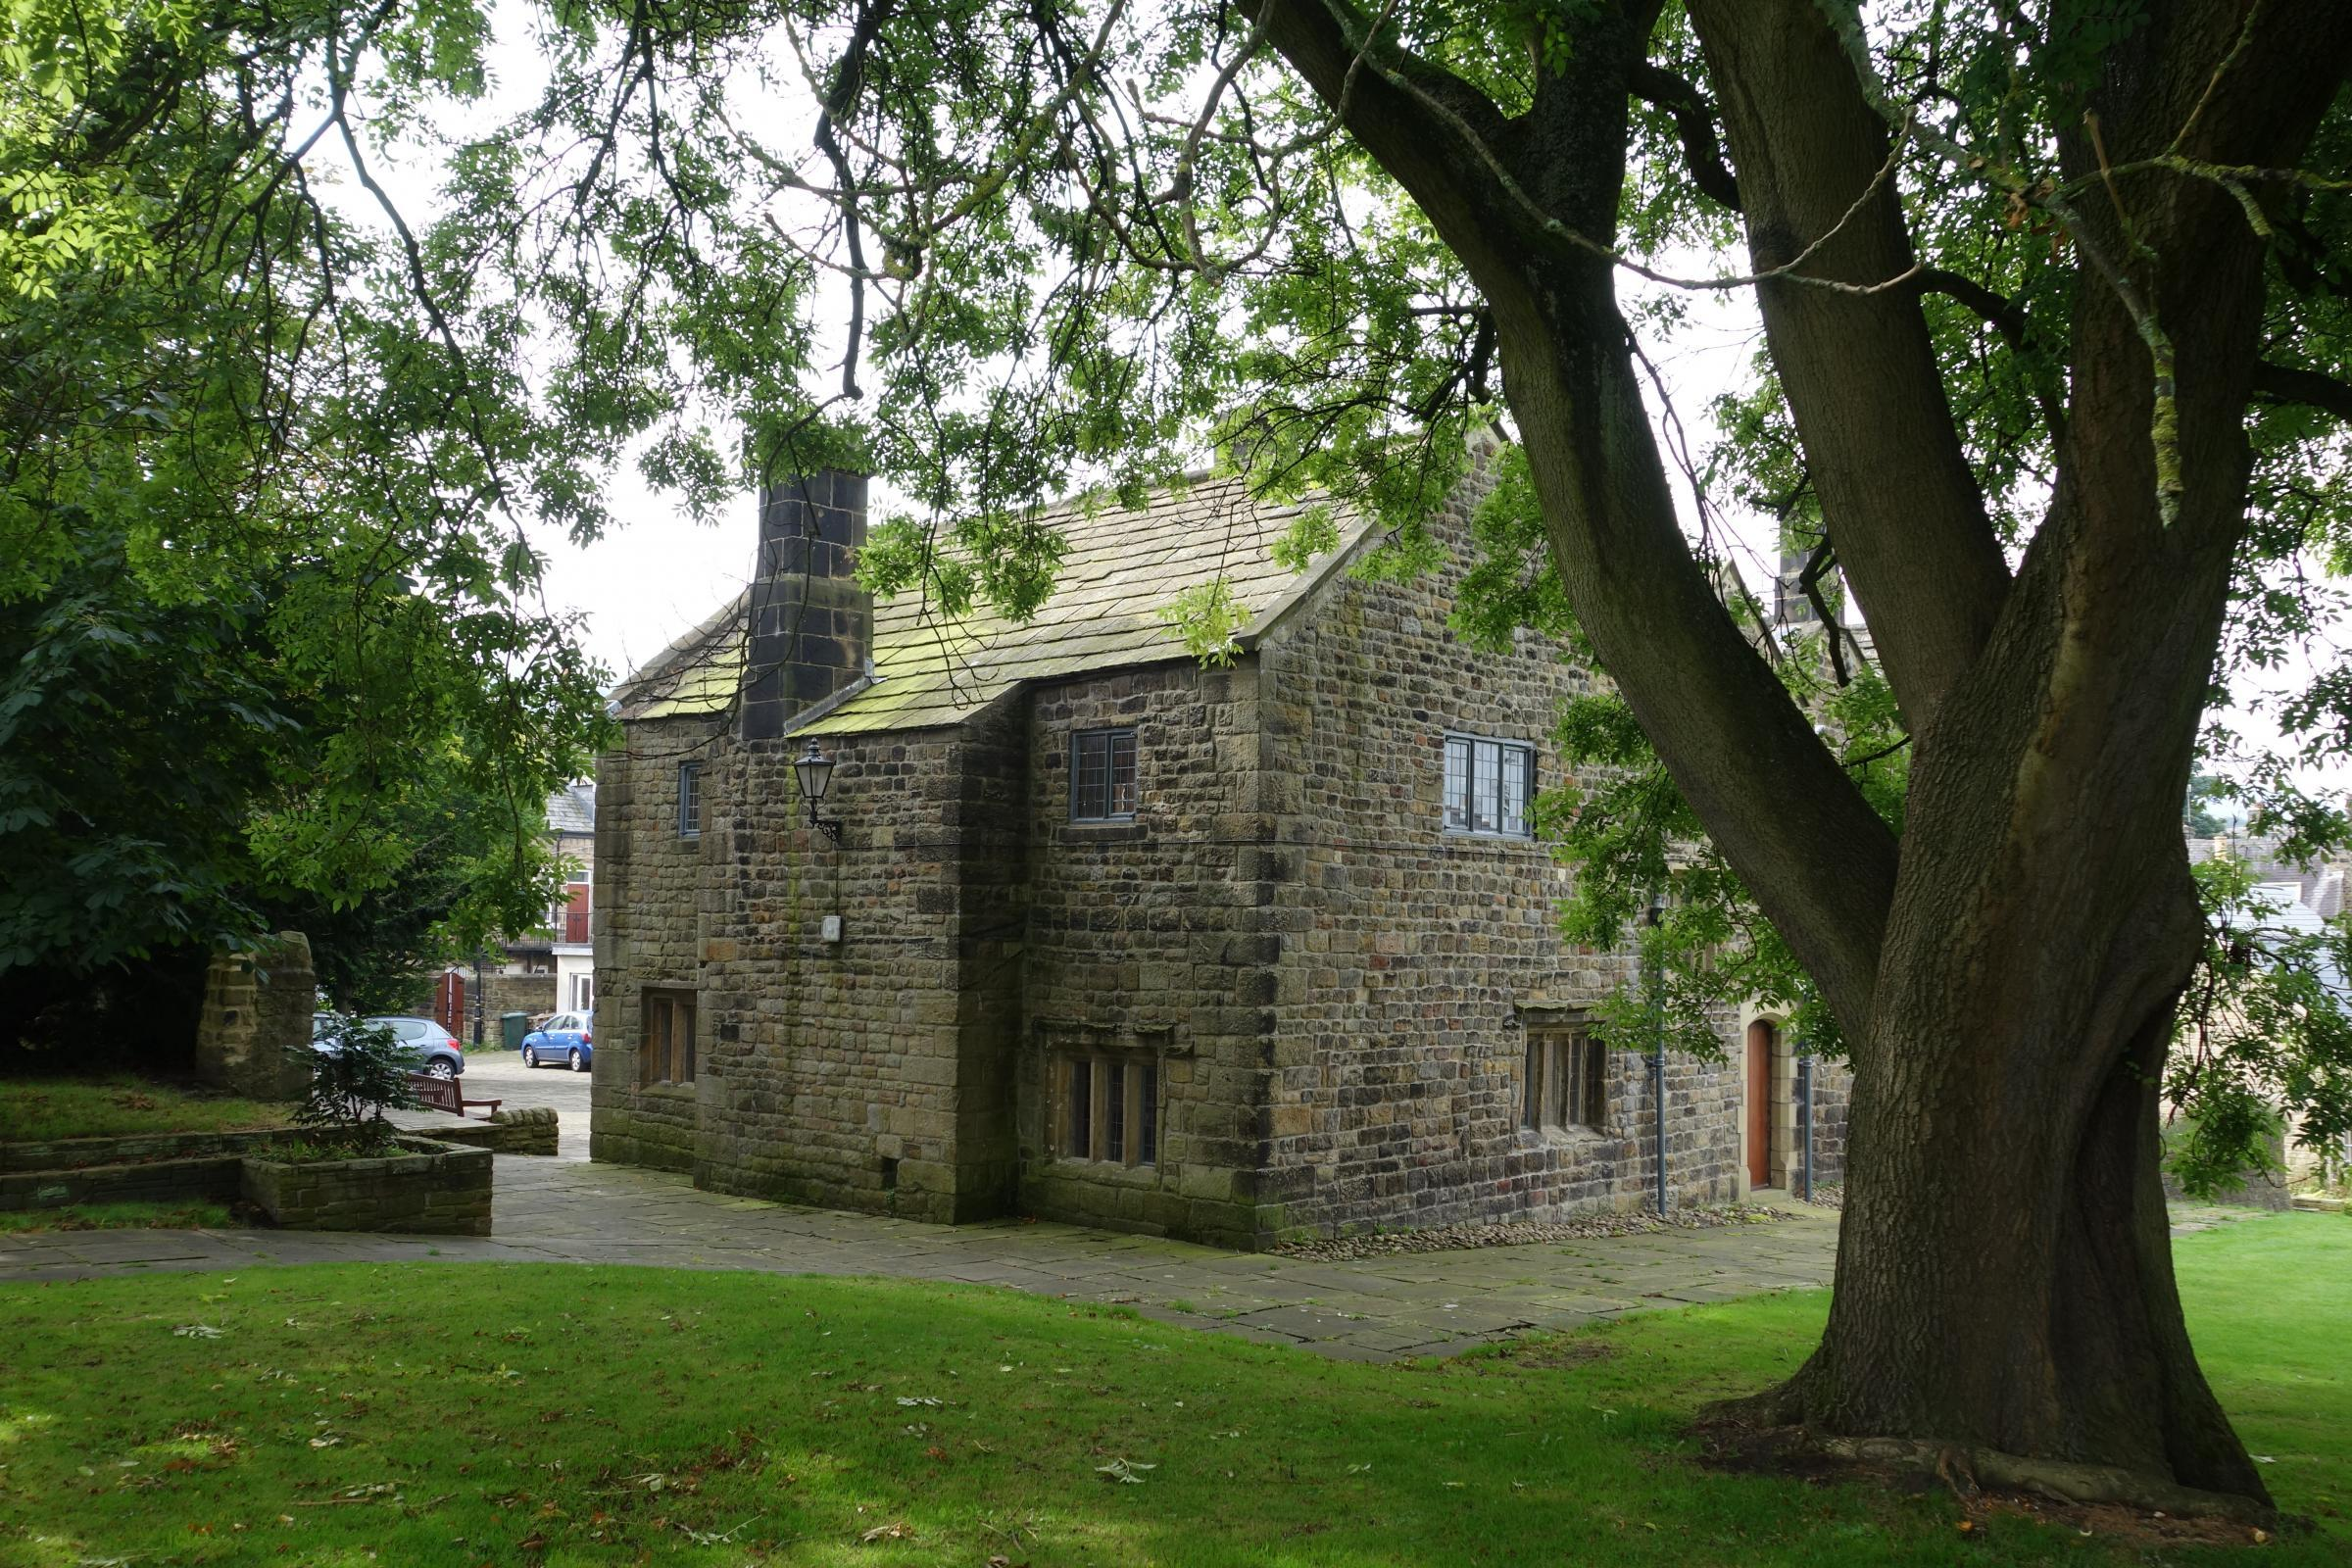 The Manor House in Ilkley